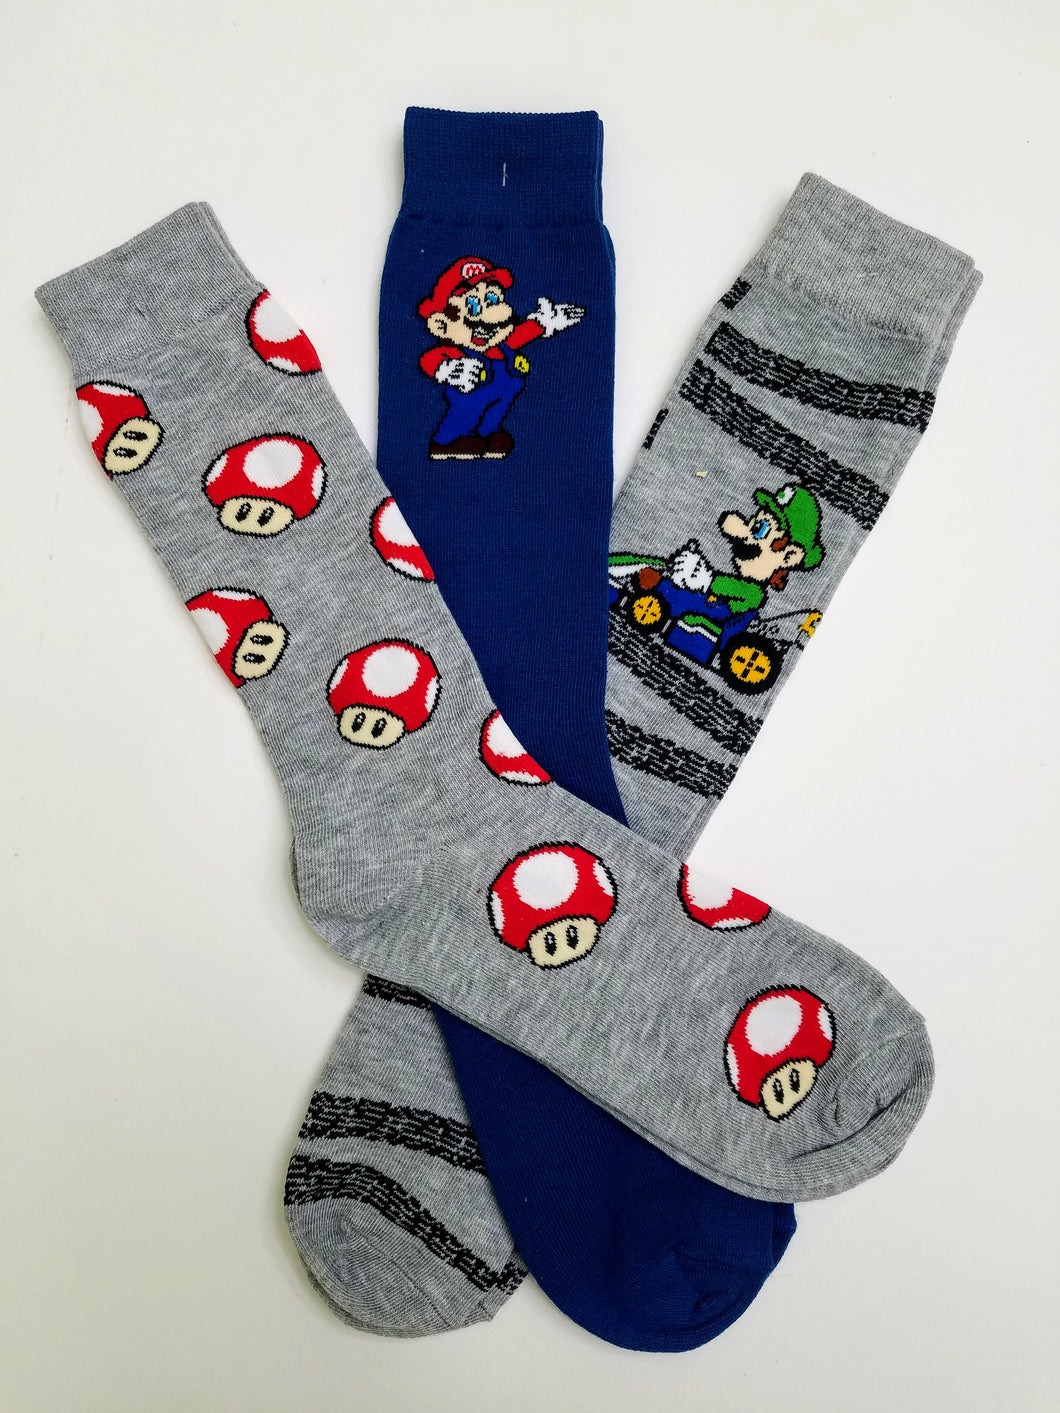 Mario Themed 3 Pack of Random Crew Socks